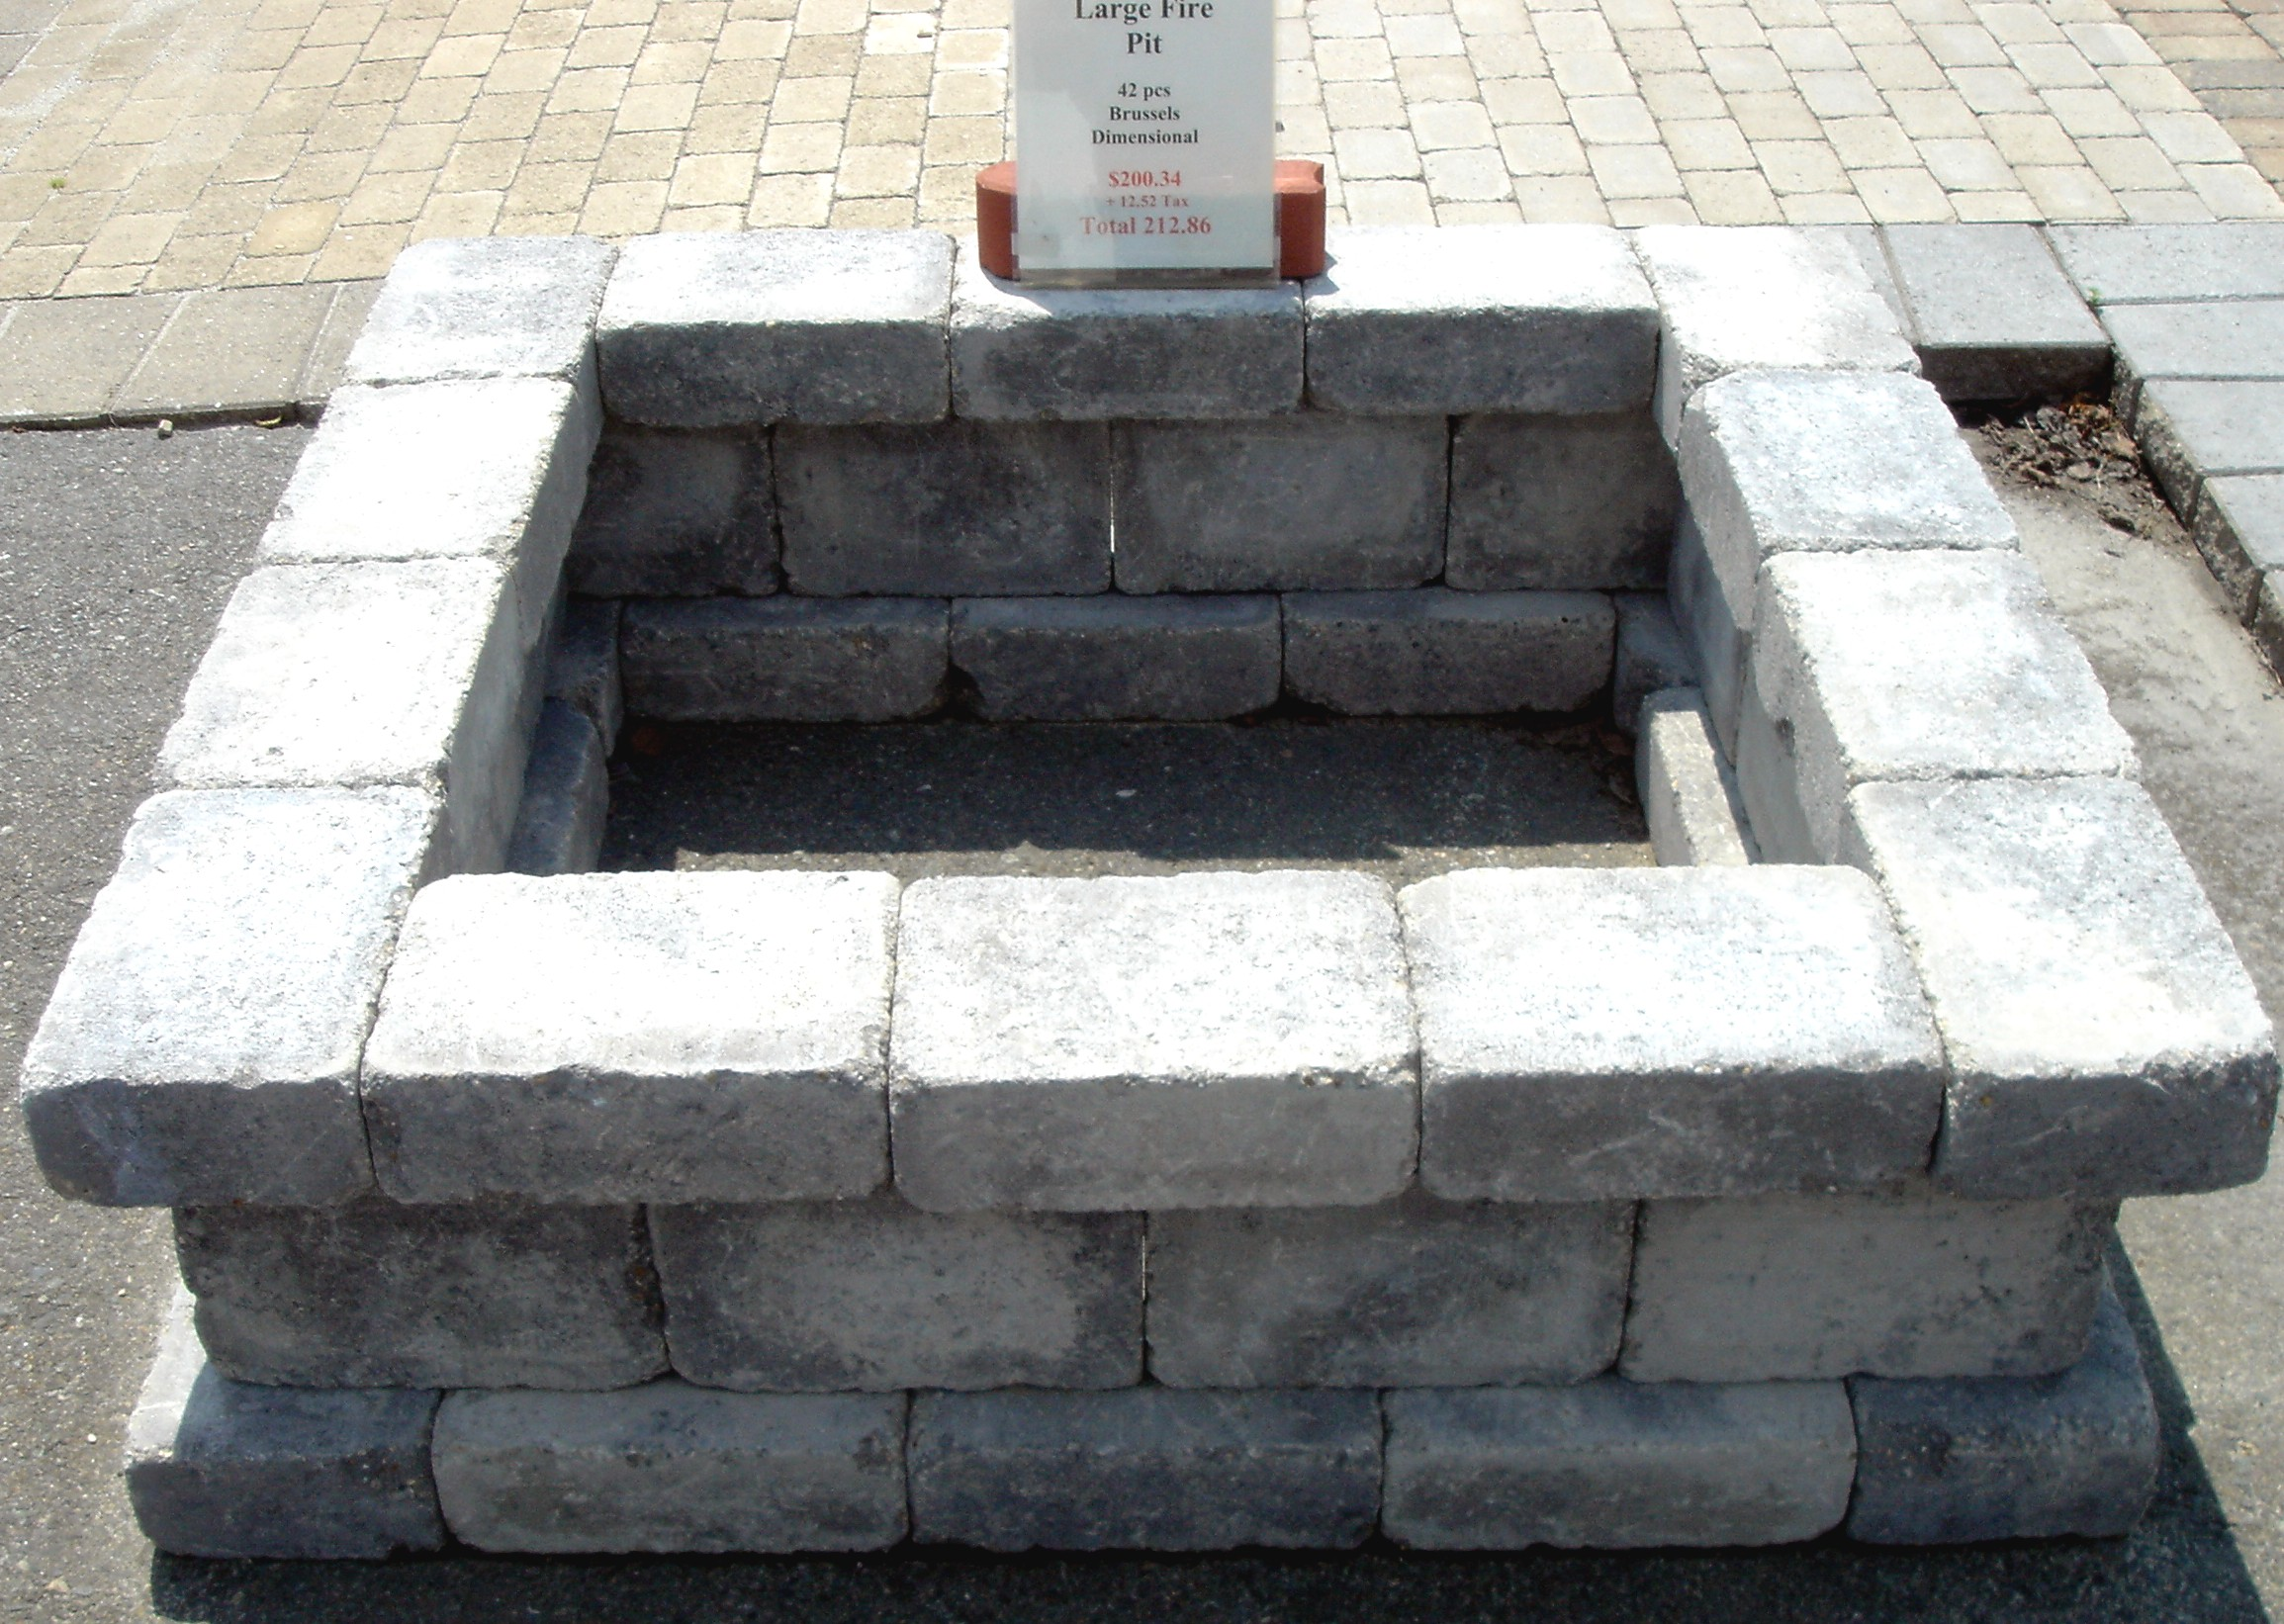 Concrete Blocks For Fire Pit